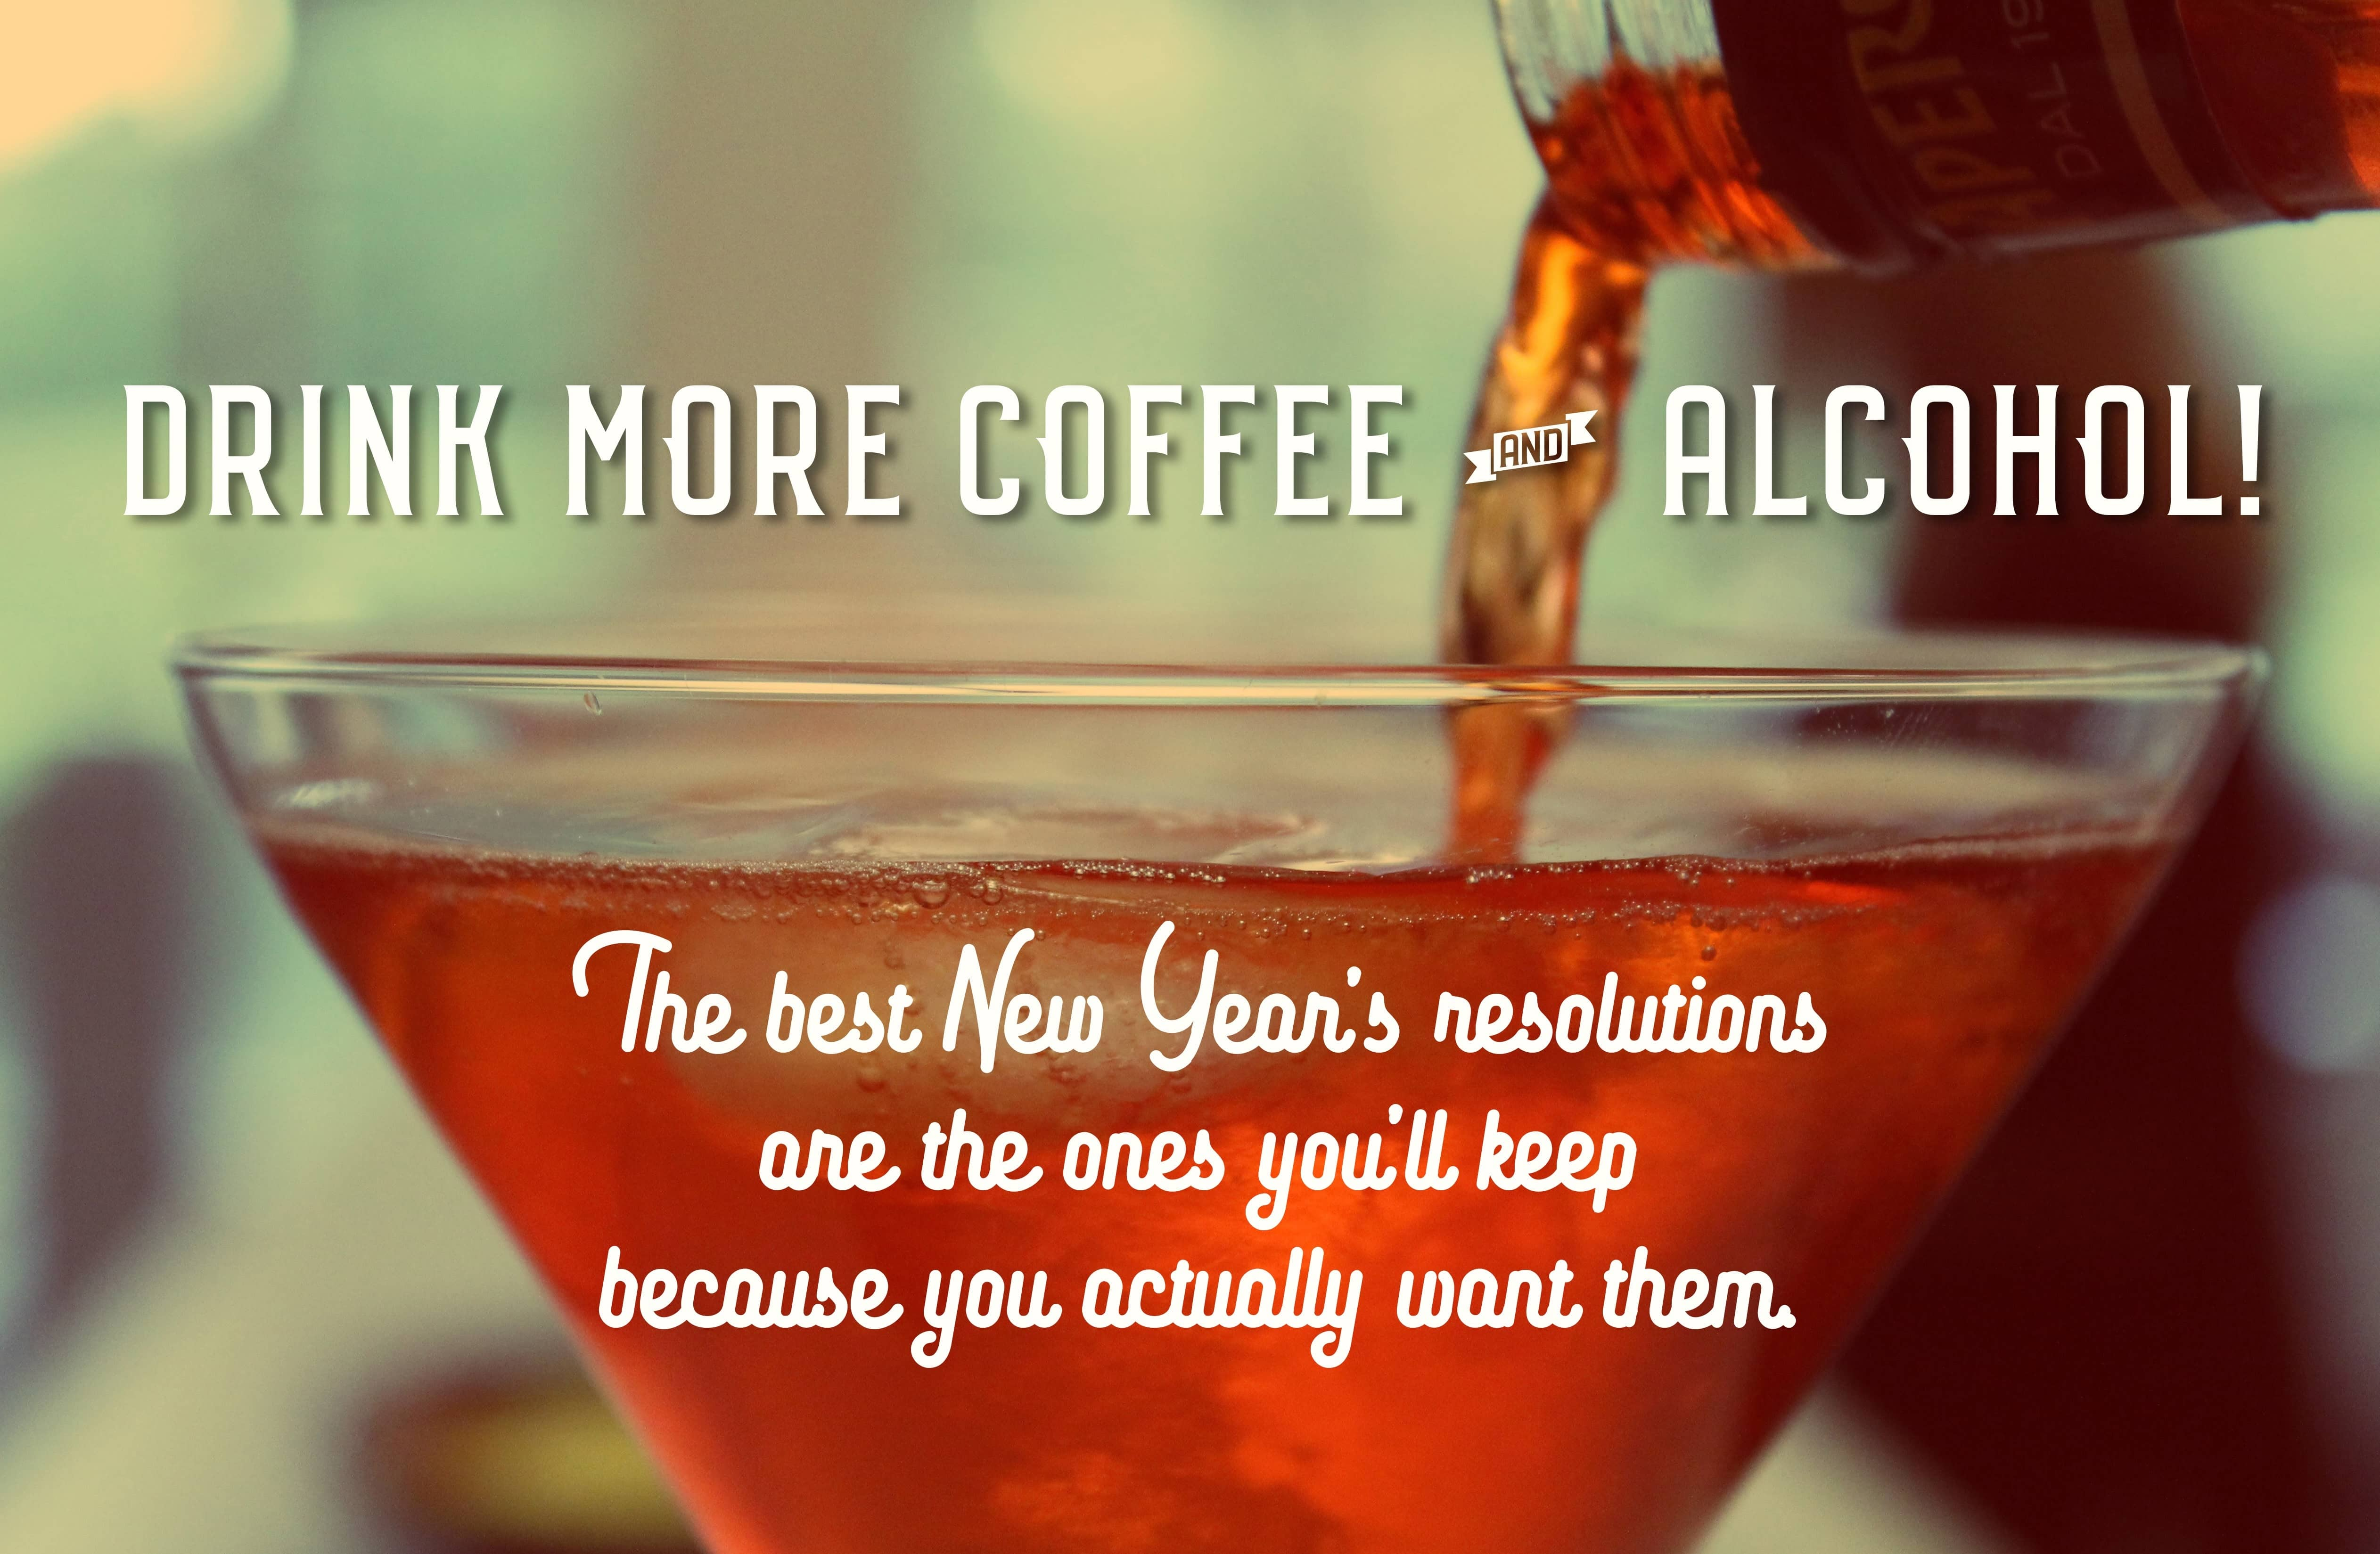 Drink More Coffee And Alcohol!